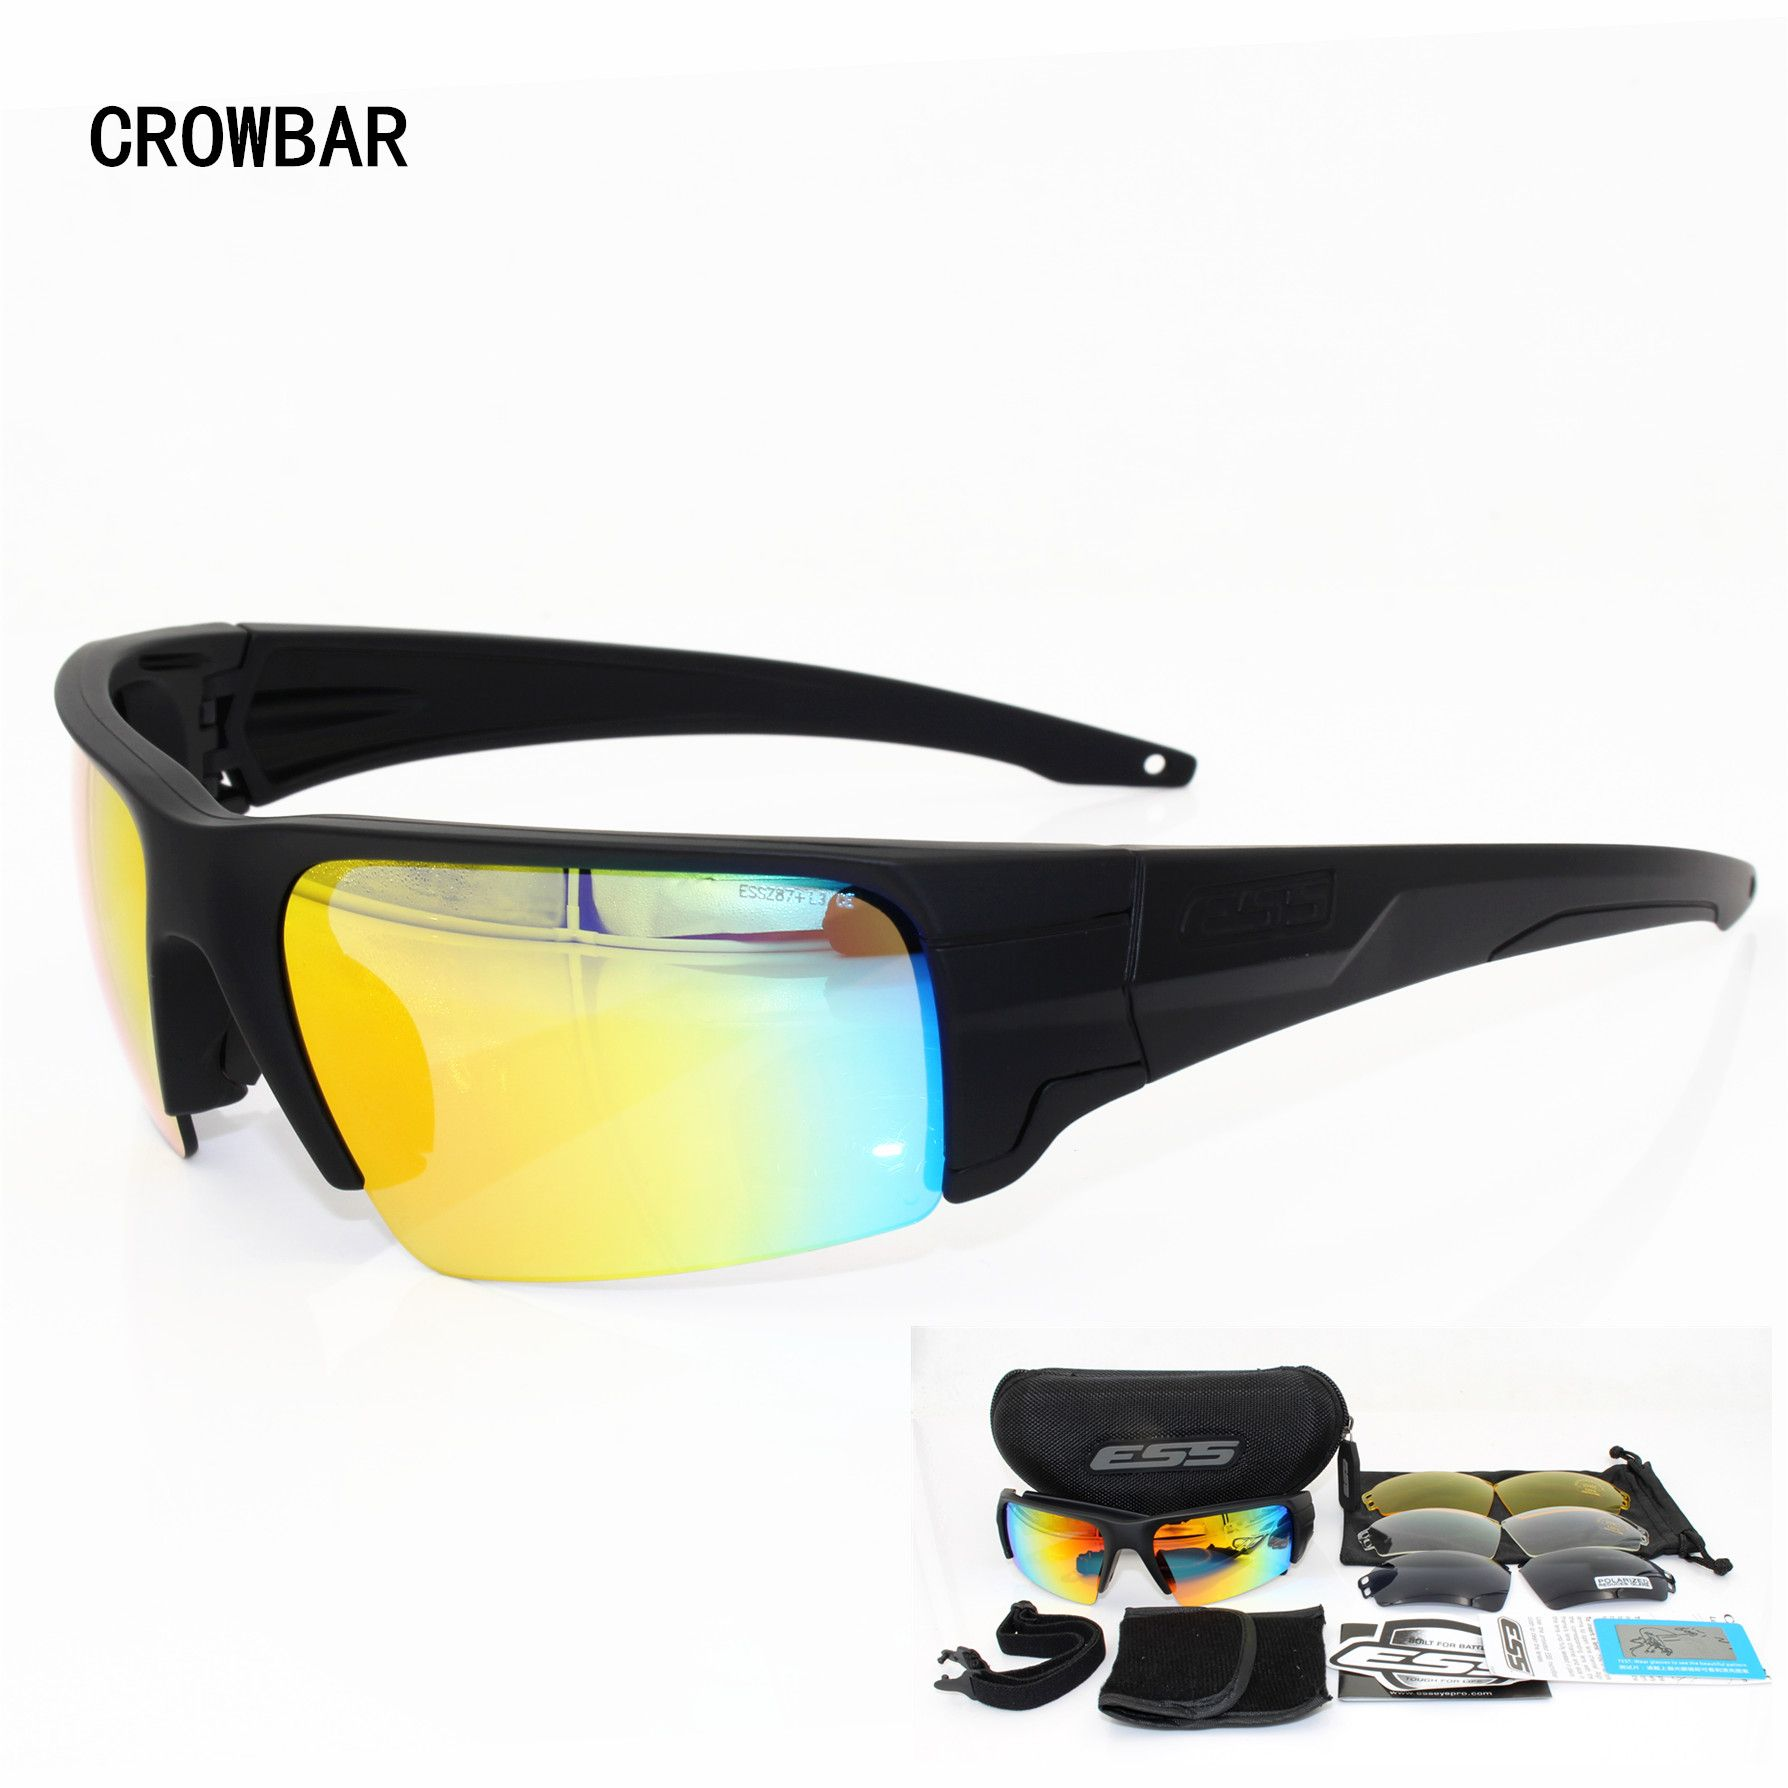 dc792f2061 ESS Brand Crowbar Polarized Tactical Sunglasses Military Glasses TR90  Crossbow Army Goggles Ballistic Test Bullet-Proof Eyewear